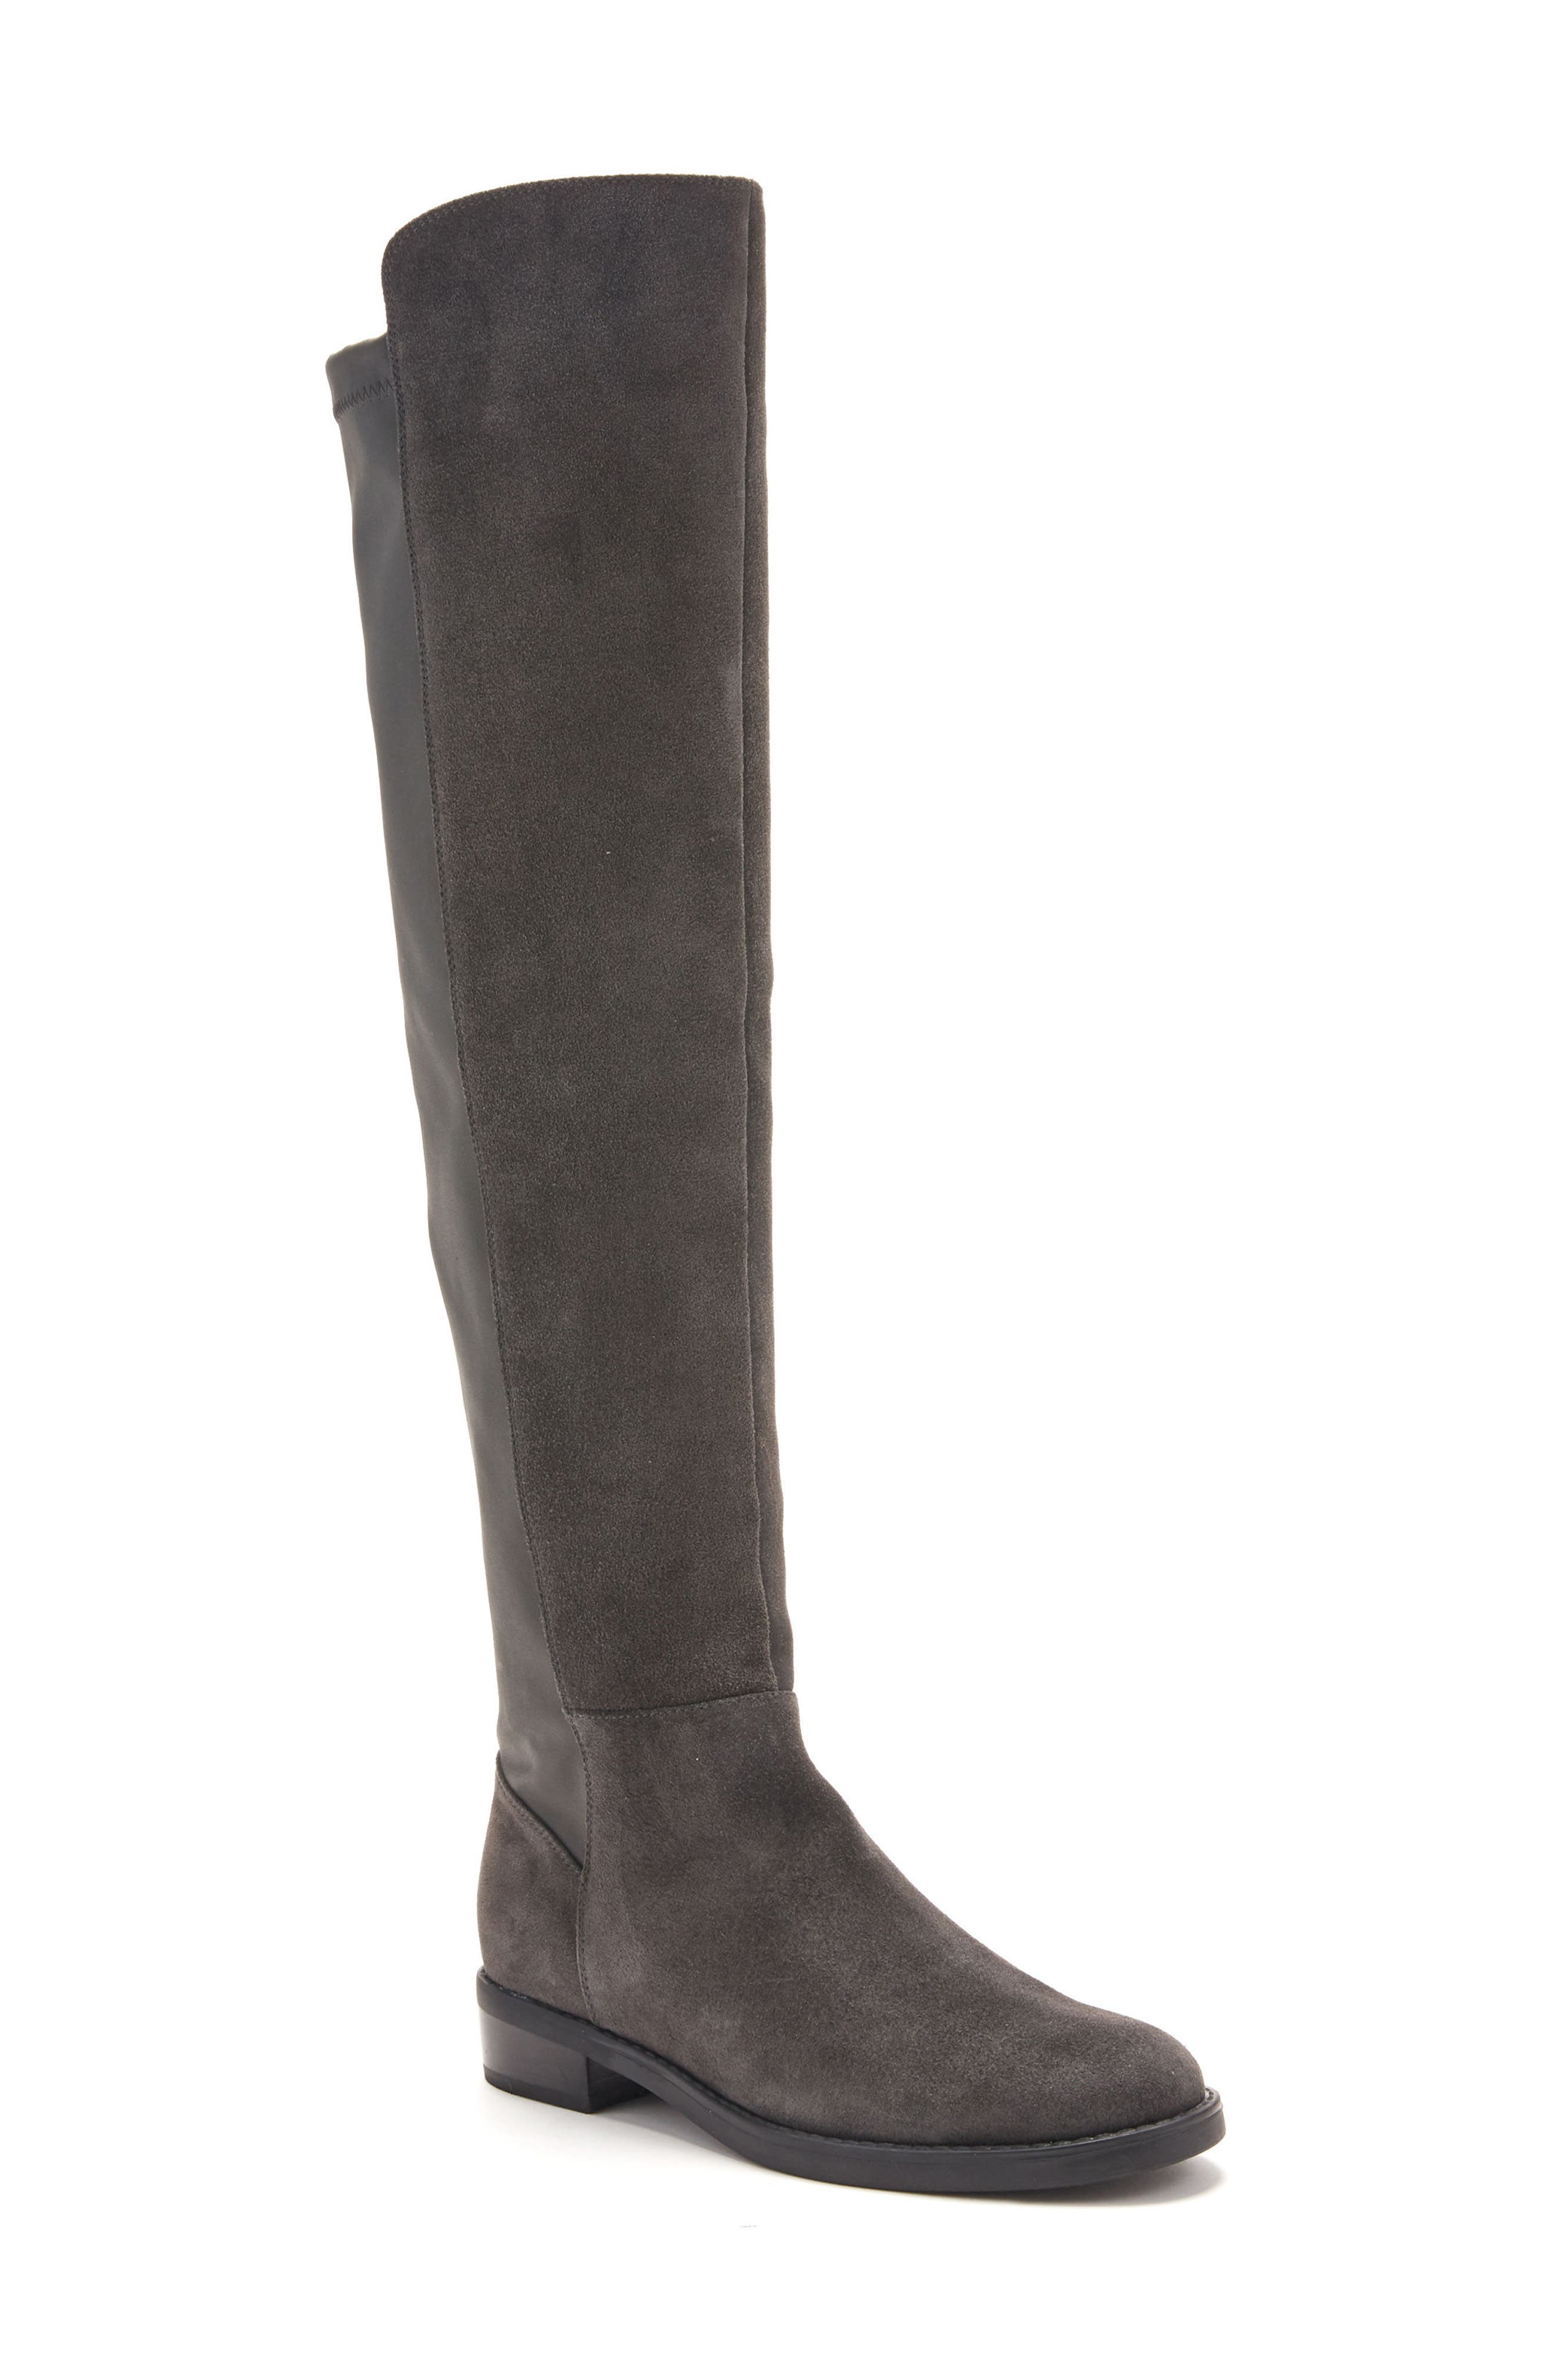 Olivia Knee High Boot,                             Main thumbnail 1, color,                             Grey Suede